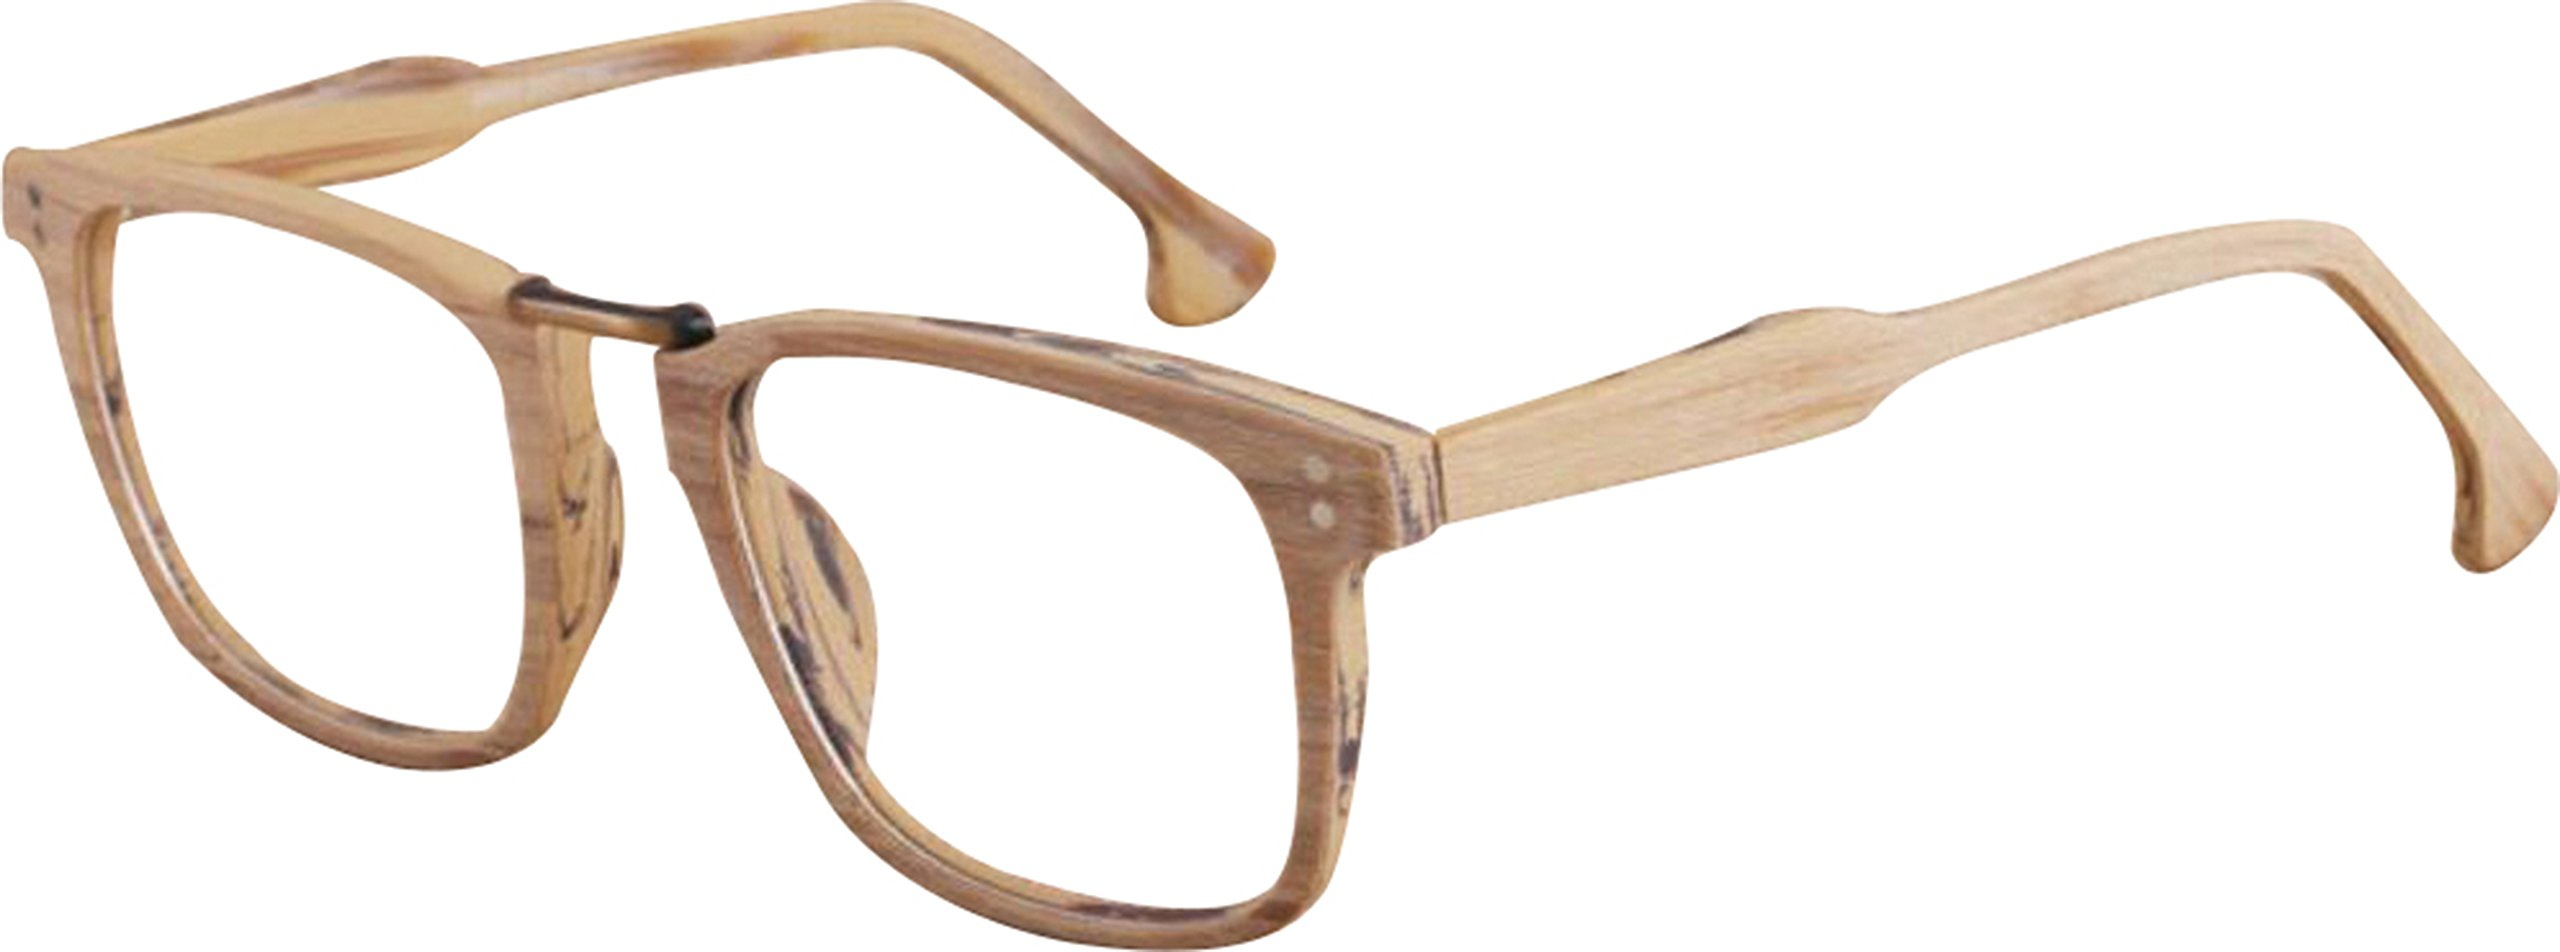 J&L Glasses Vintage Classic Full Frame Wood Grain Unisex Glasses Frame (Light Wooden, clear) by J&L Glasses